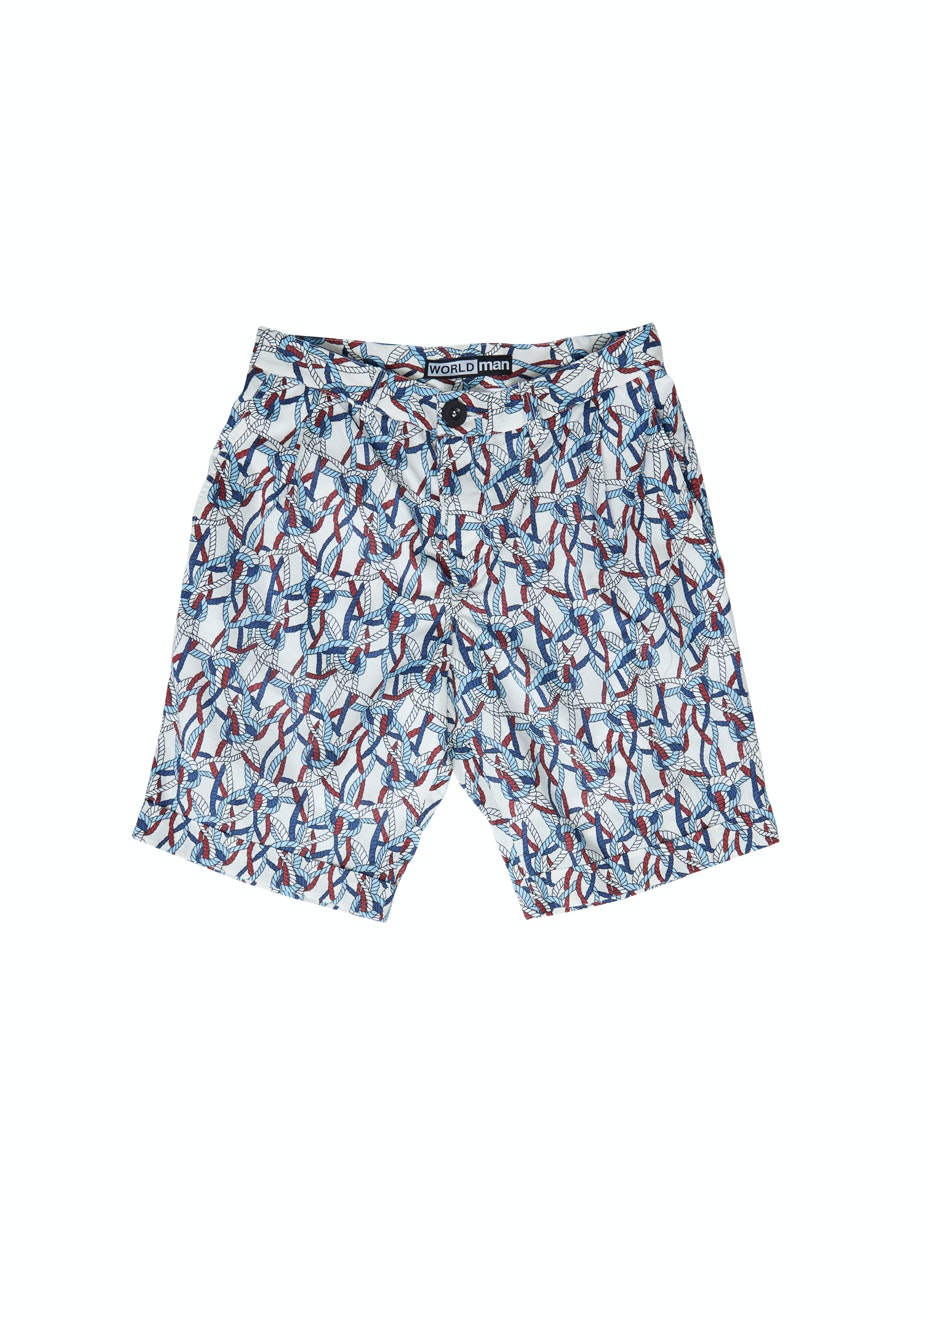 WORLD Man Gathering Shorts